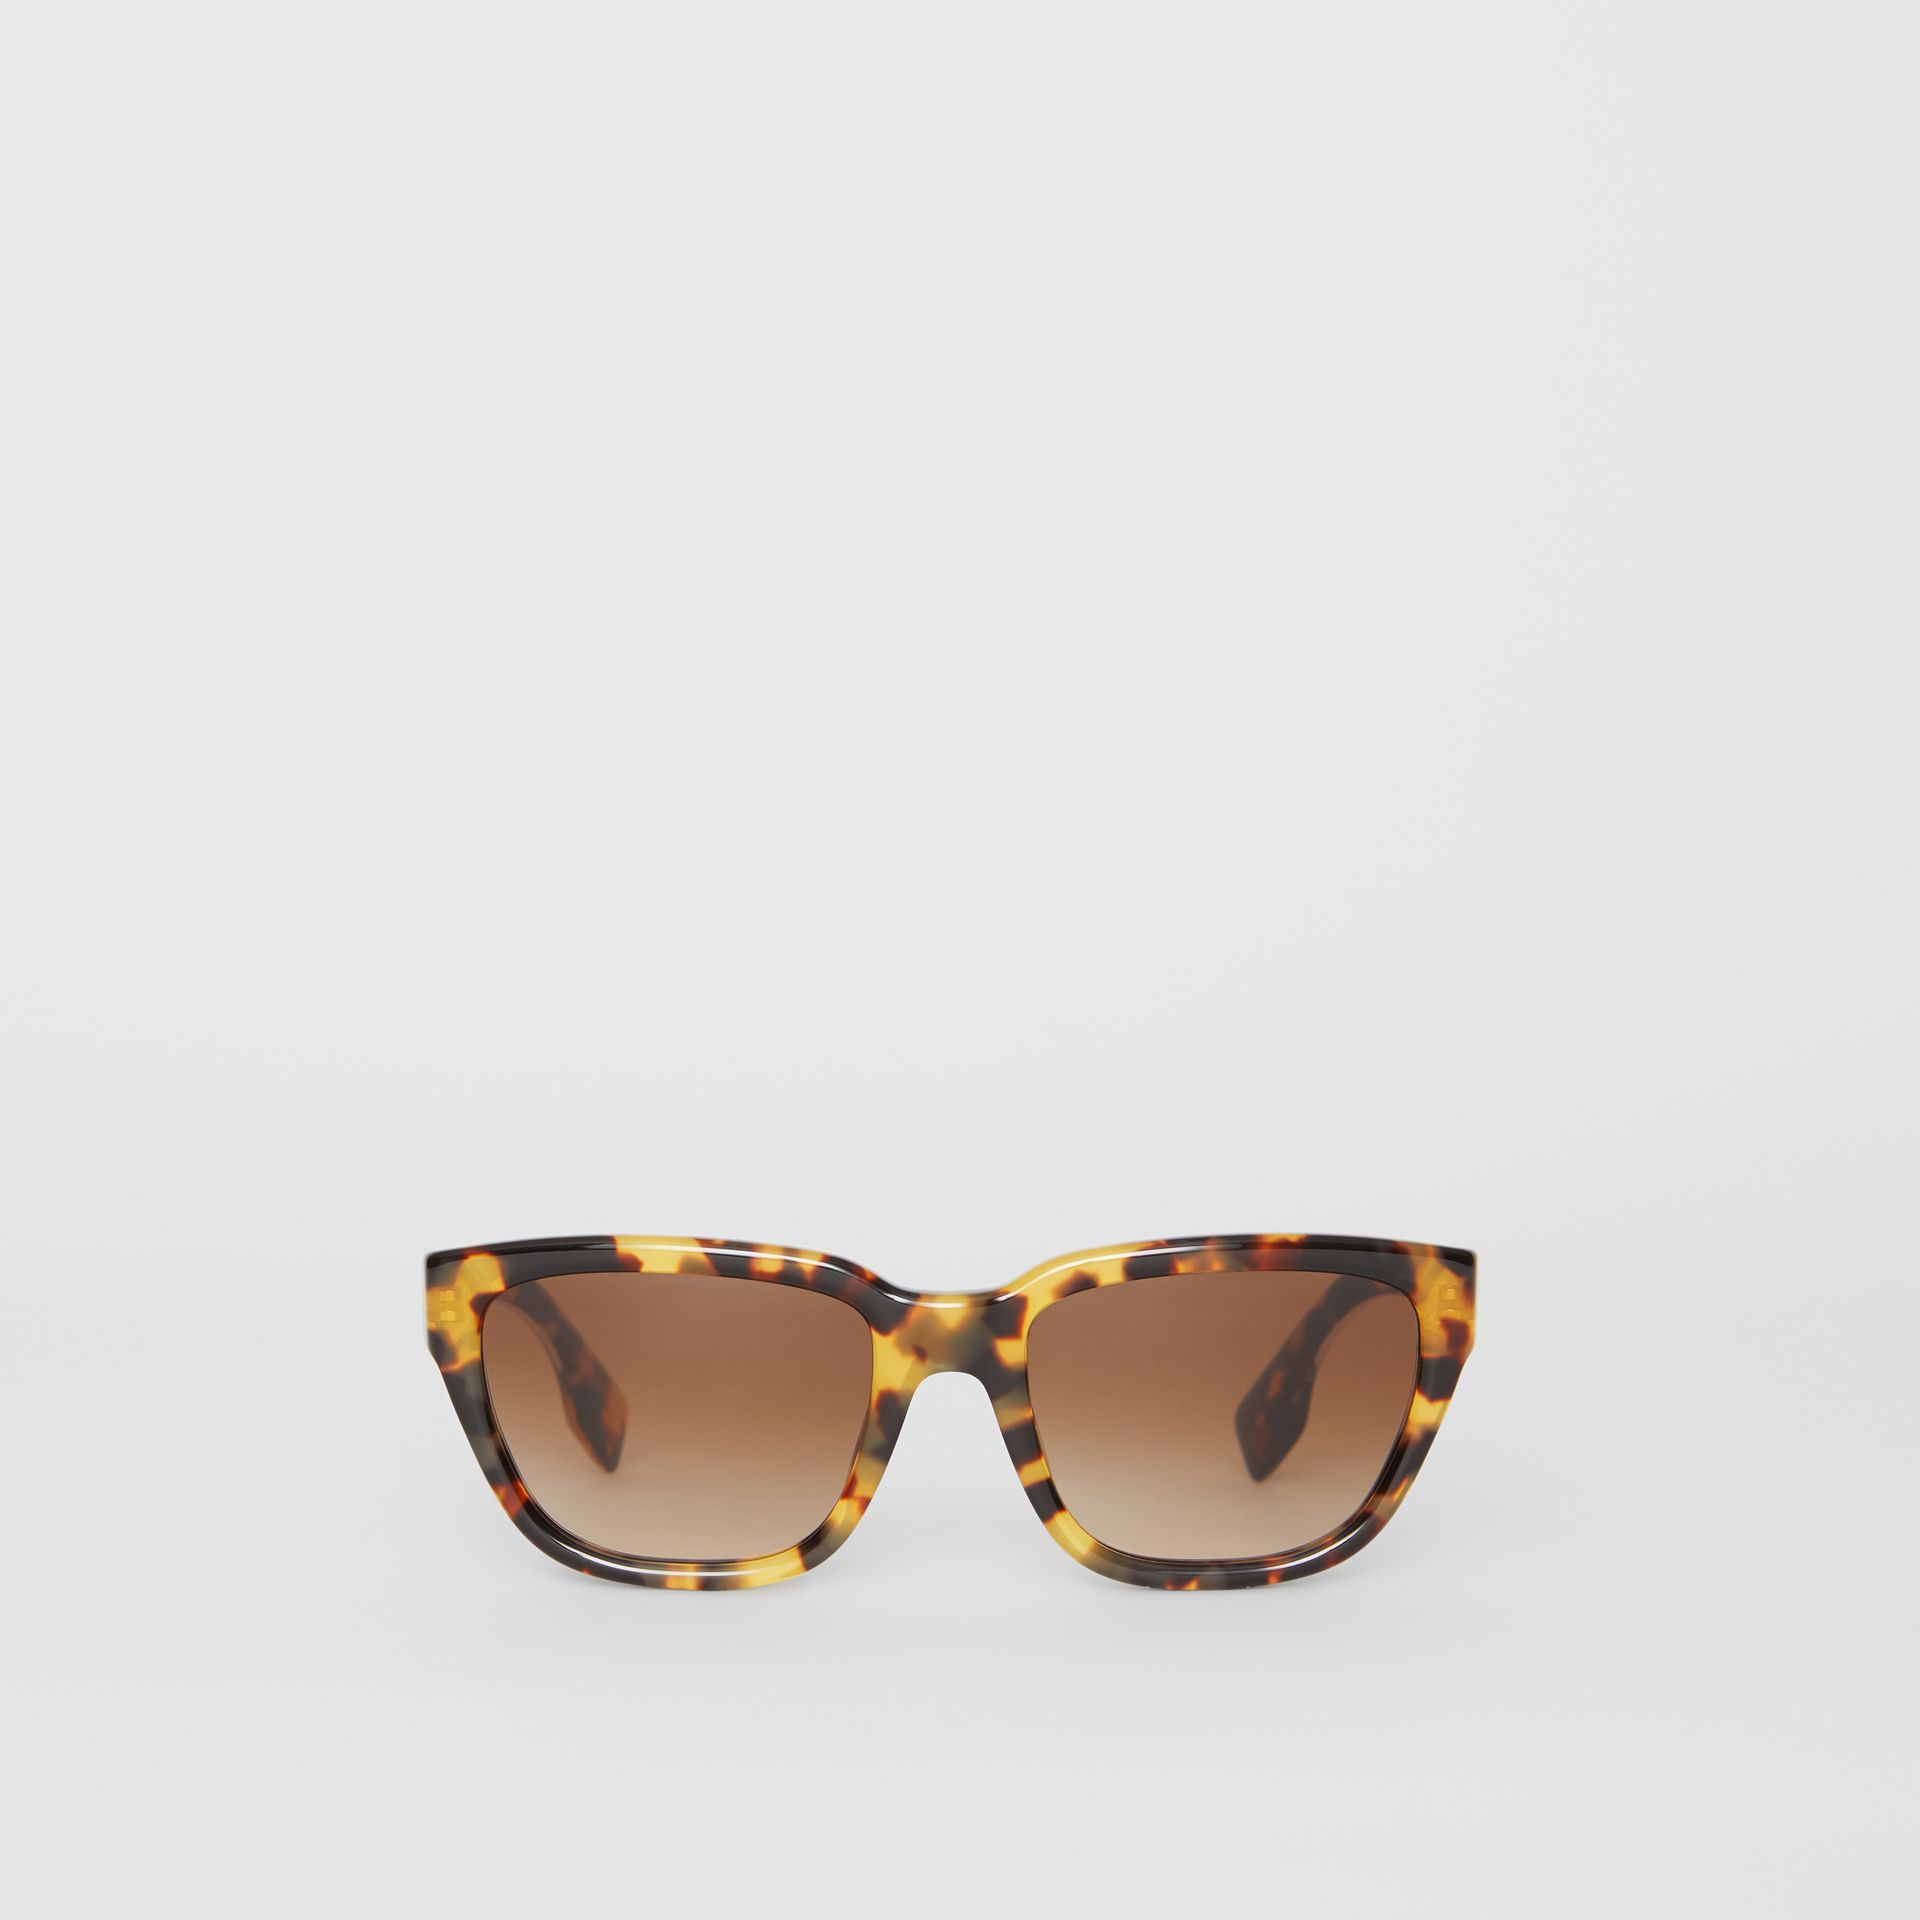 Square Frame Sunglasses in Tortoise Shell - Women | Burberry United States - gallery image 0